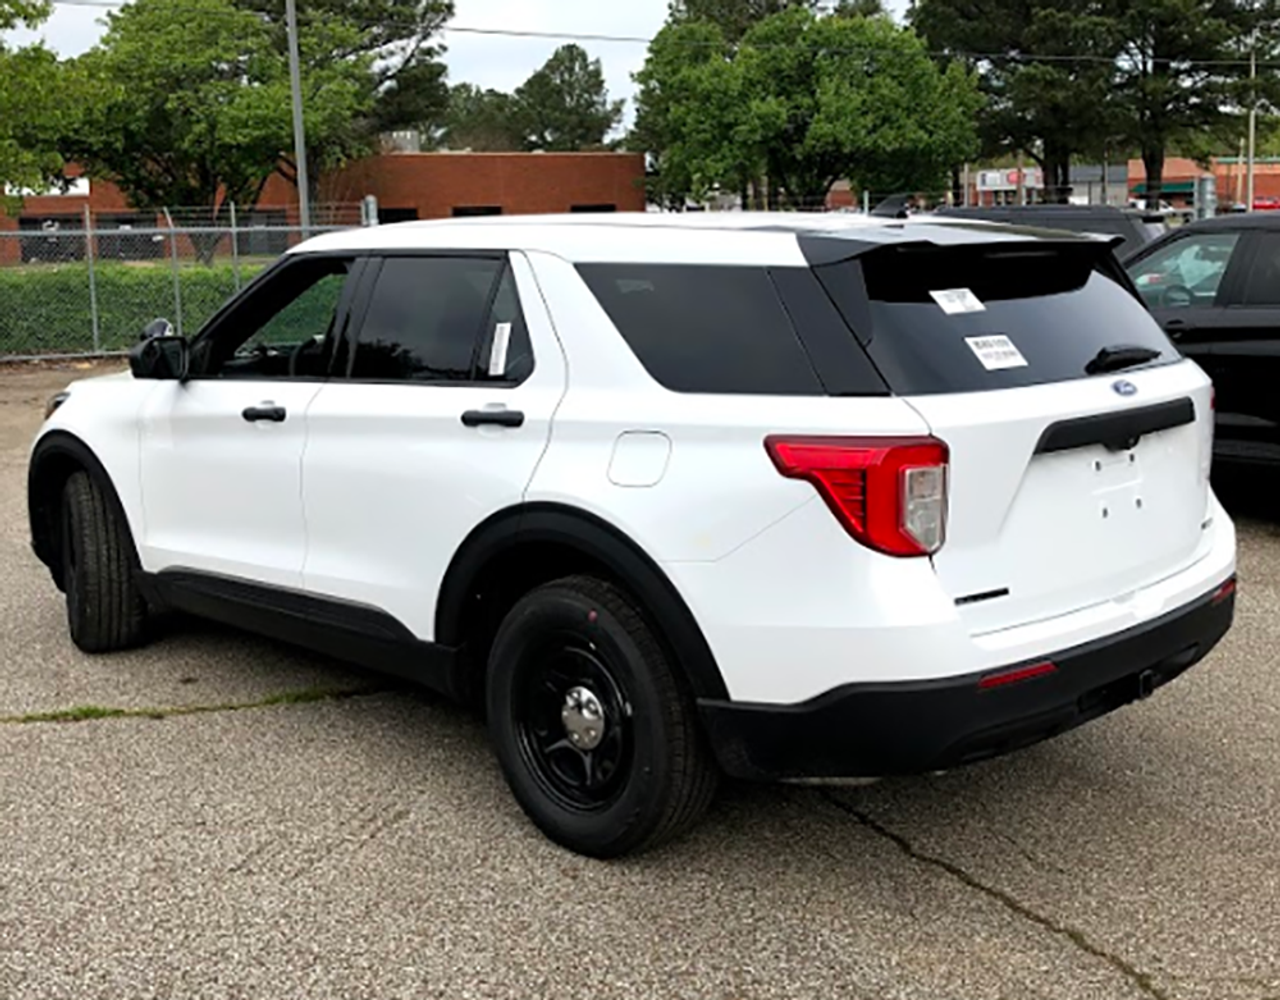 New 2020 White Ford (Explorer) Police Interceptor Utility Hybrid AWD For Sale, Ready to be Built as a Marked Patrol, Turnkey, featuring Whelen, Soundoff, Setina, Havis, + Delivery